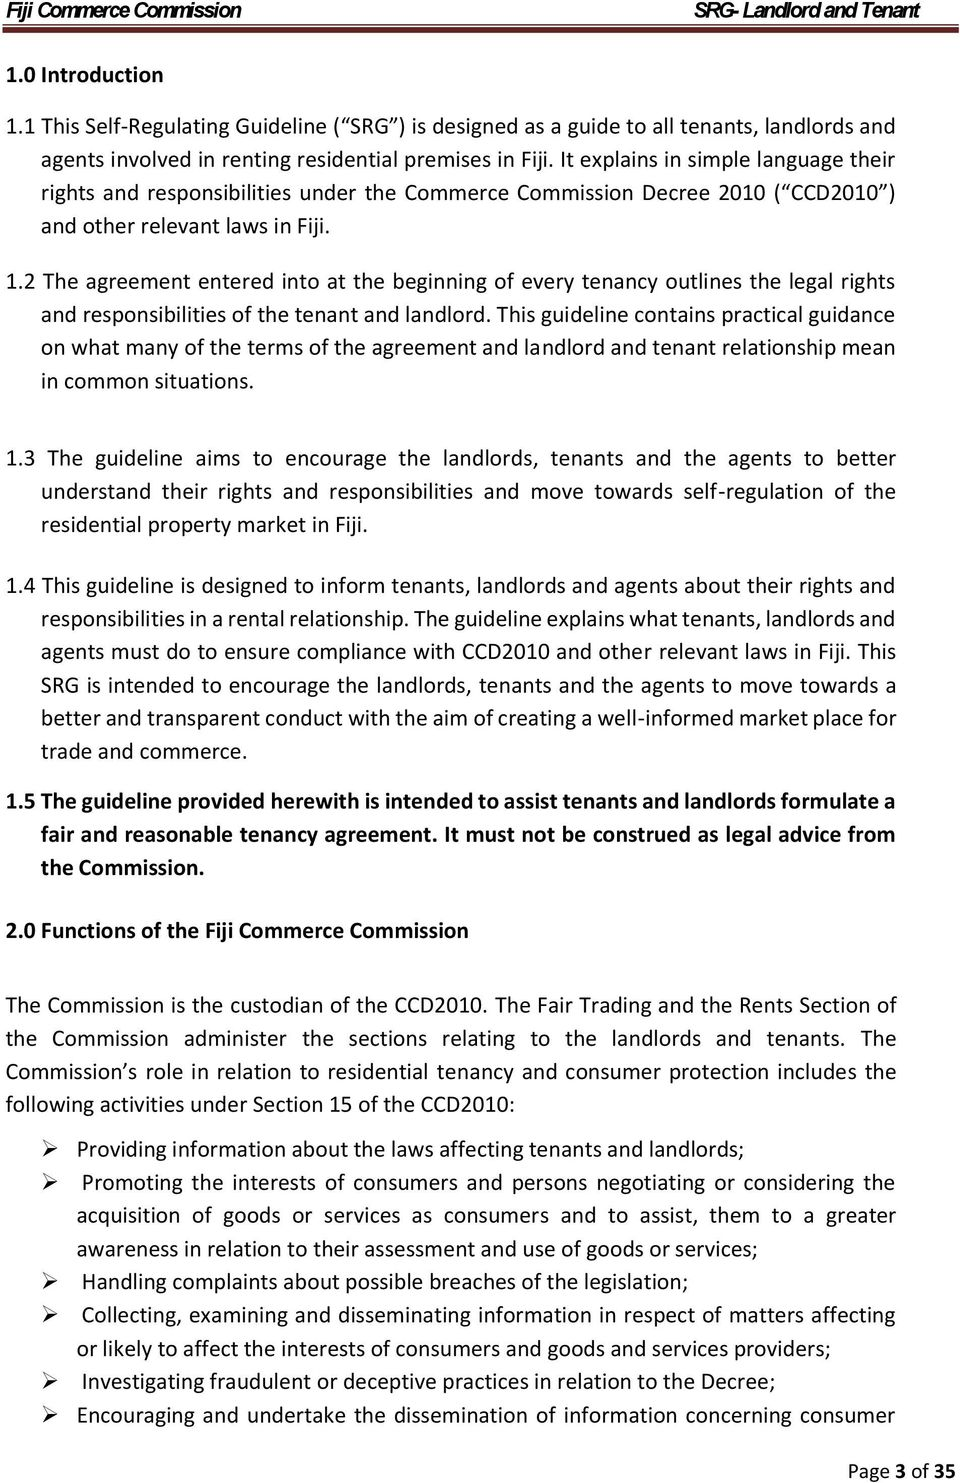 Self Regulating Guideline For Landlord And Tenant In Fiji Pdf